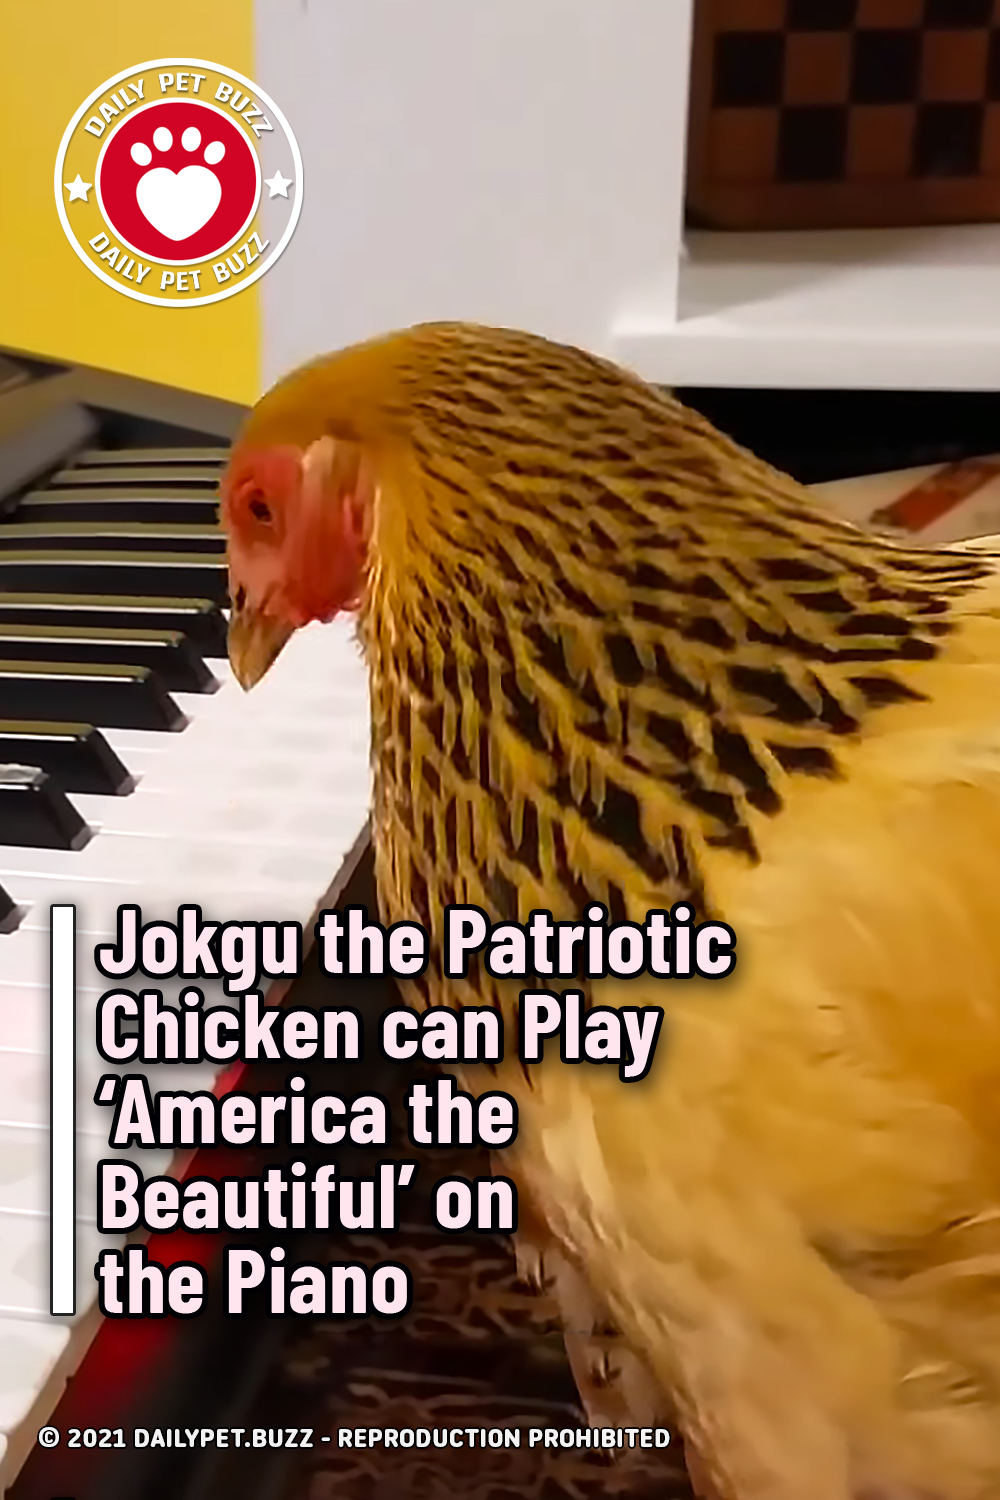 Jokgu the Patriotic Chicken can Play 'America the Beautiful' on the Piano